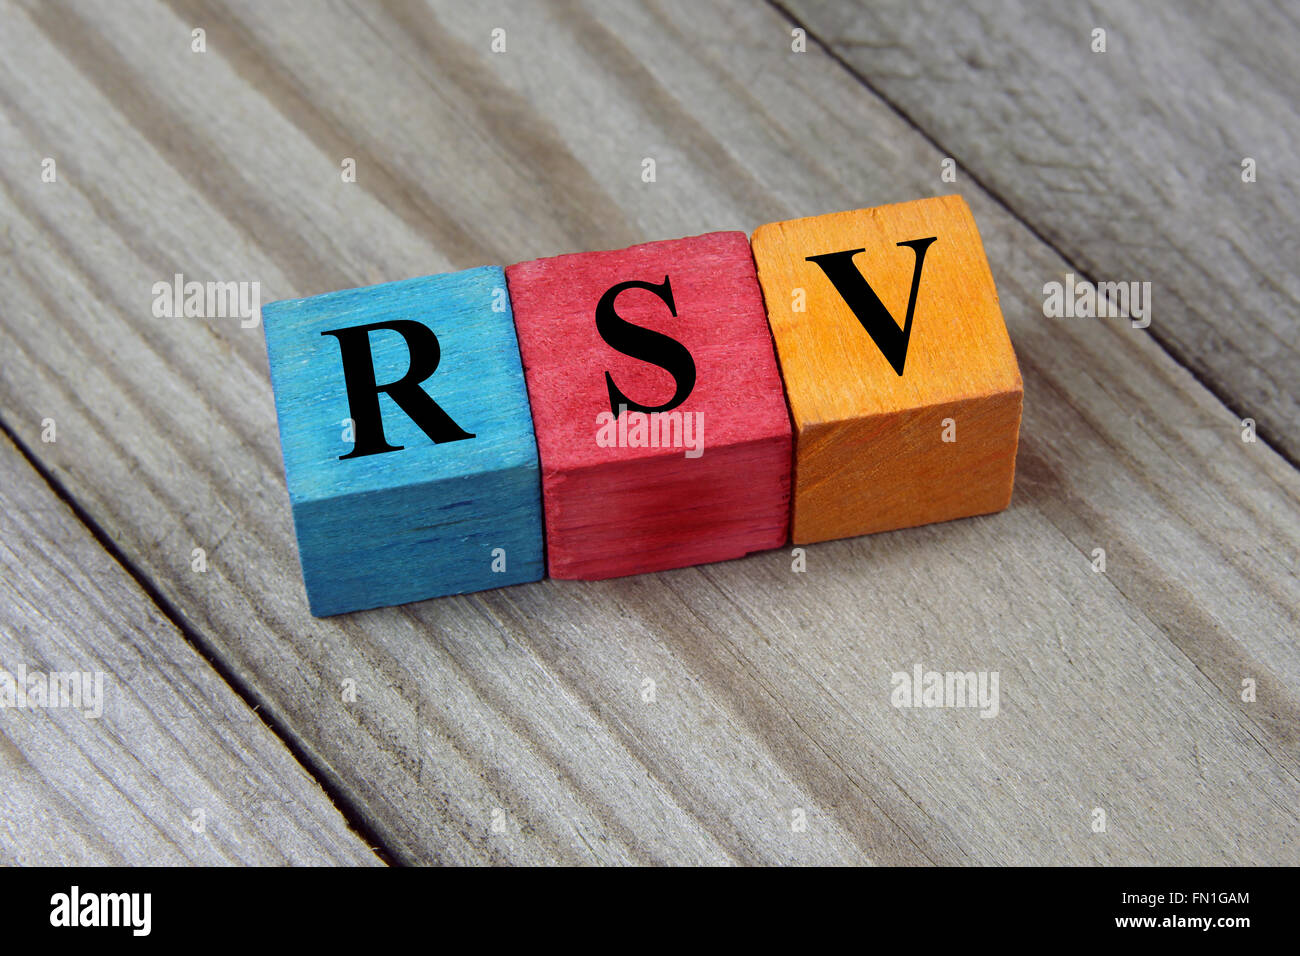 acronym on colorful wooden cubes - Stock Image